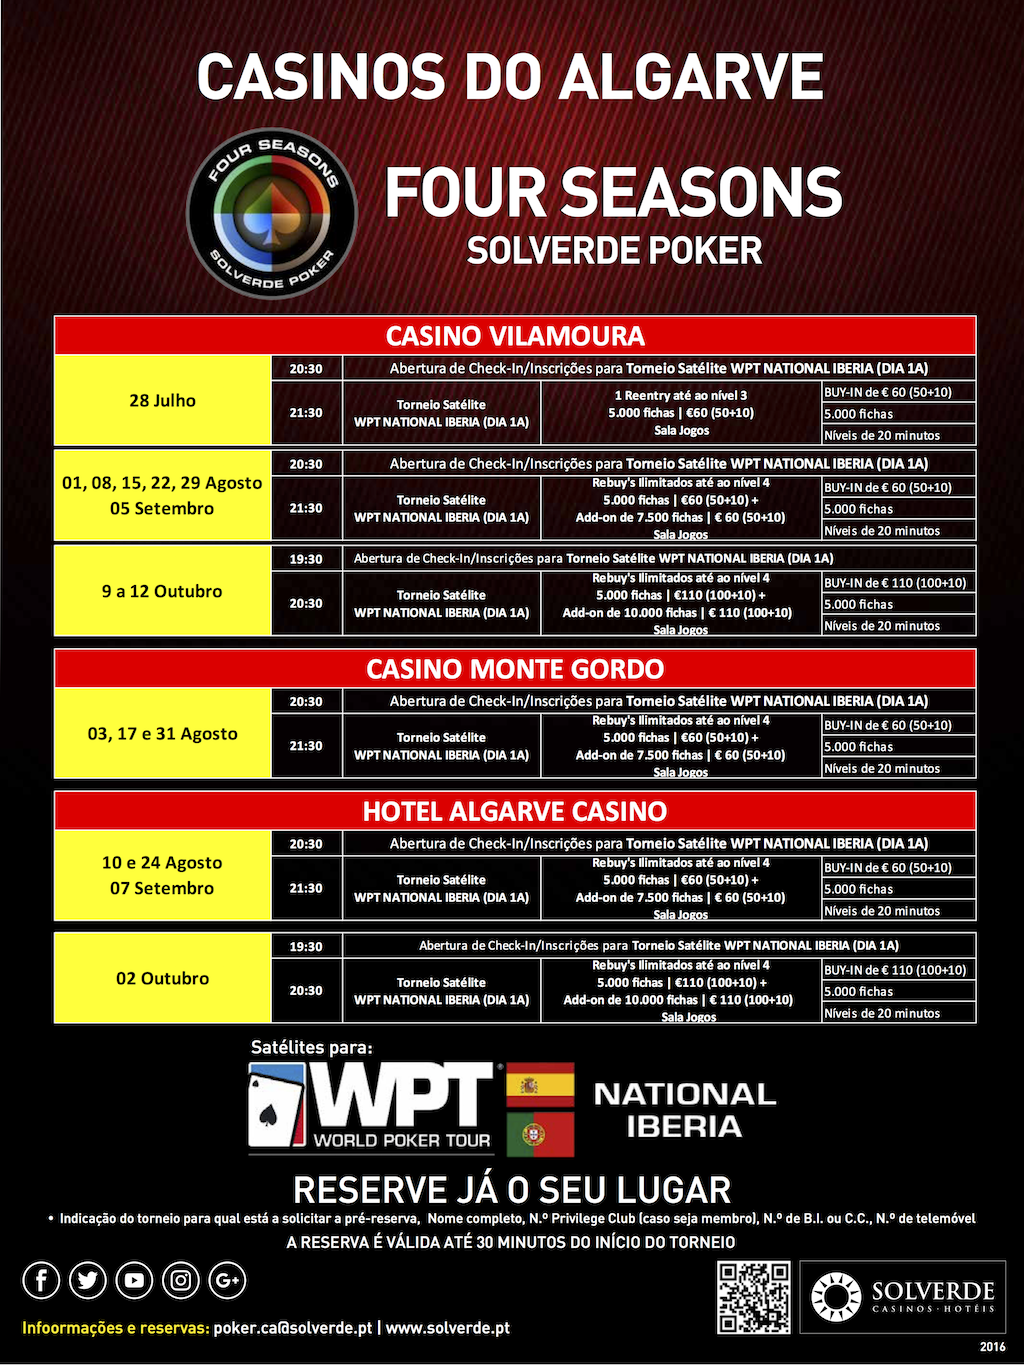 Dois Satélites WPT NationaI Iberia nos Casinos do Algarve Esta Semana 101